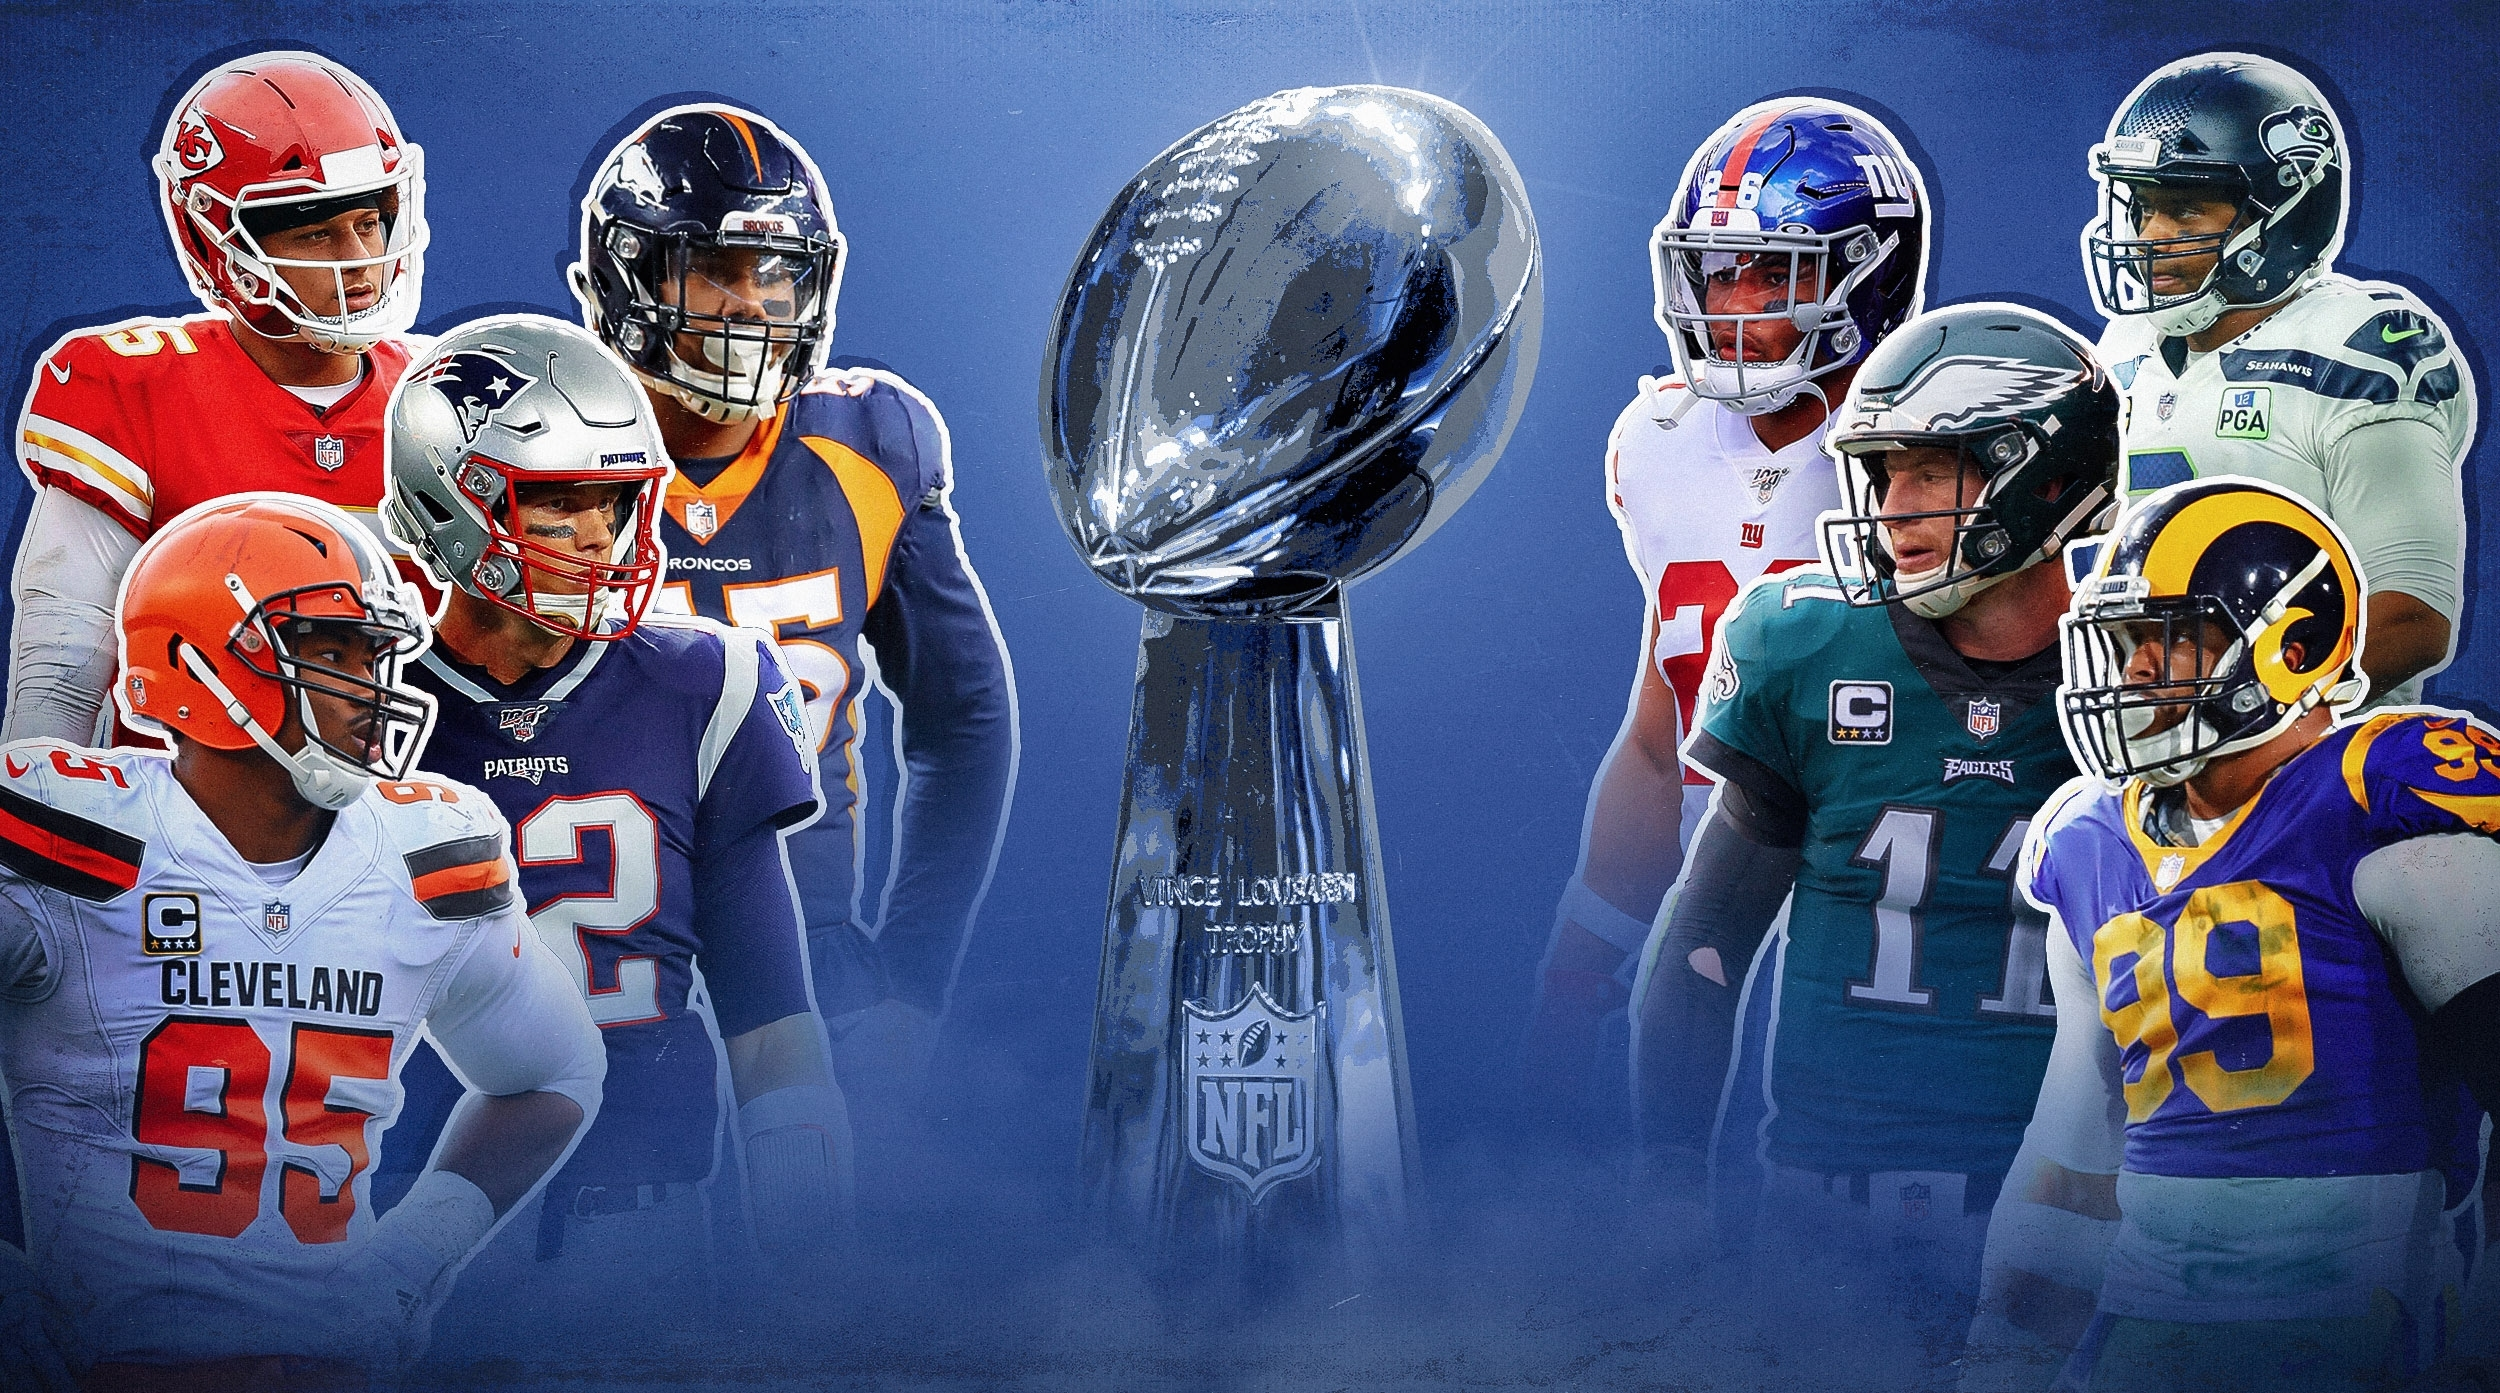 Nfl Predictions 2019: Playoff Picks, Super Bowl Champ, Nfl with regard to Super Bowl 2019 Mvp Voting Online